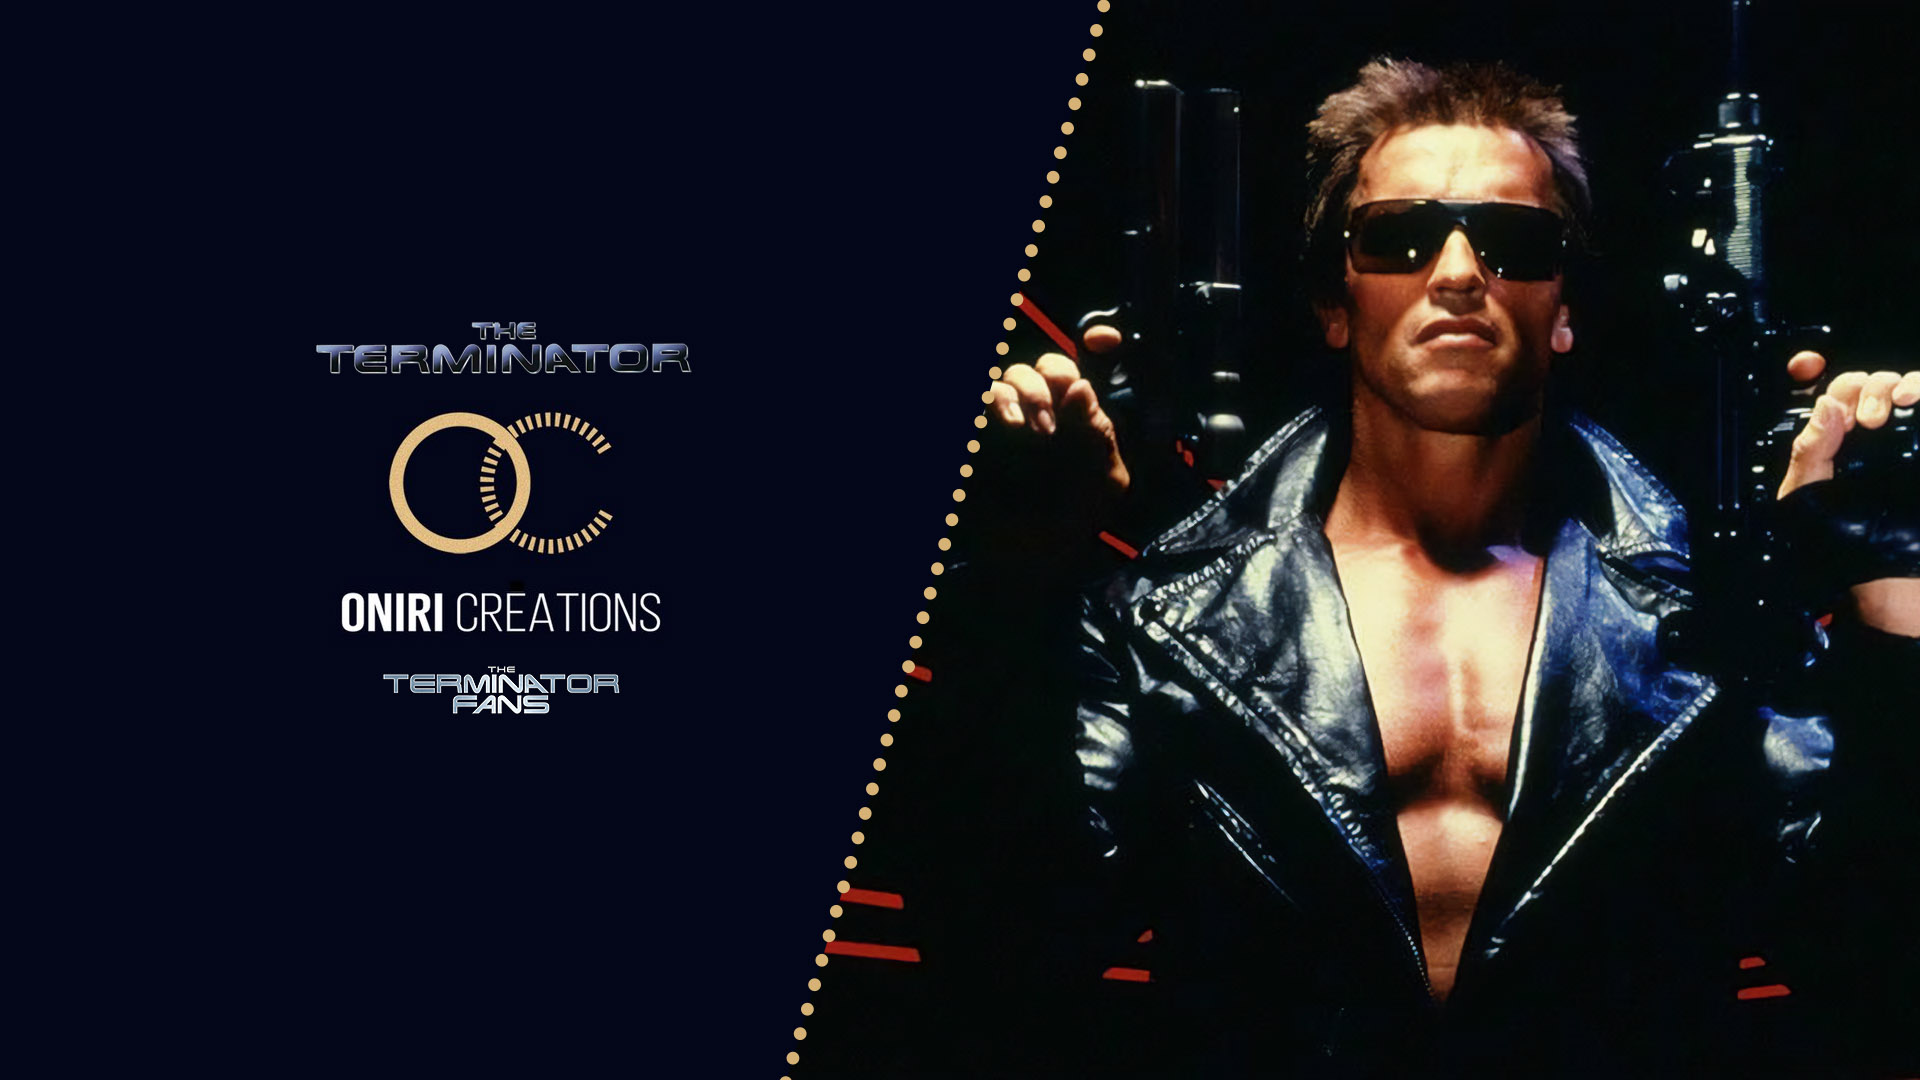 Oniri Créations To Unveil The Terminator Statue